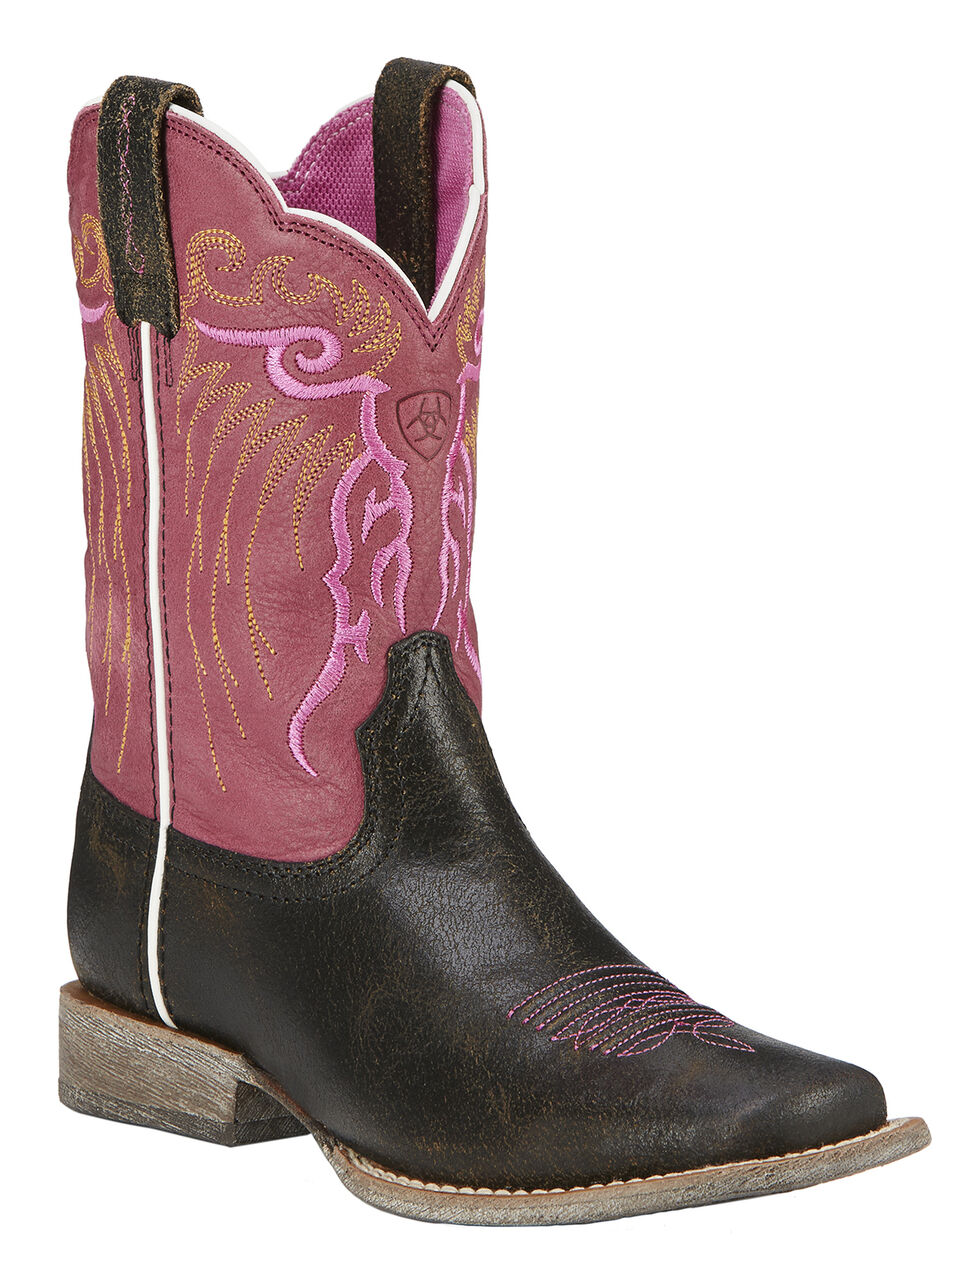 Ariat Girls' Mesteno Boot Cowgirl Boots - Square Toe, Toffee, hi-res